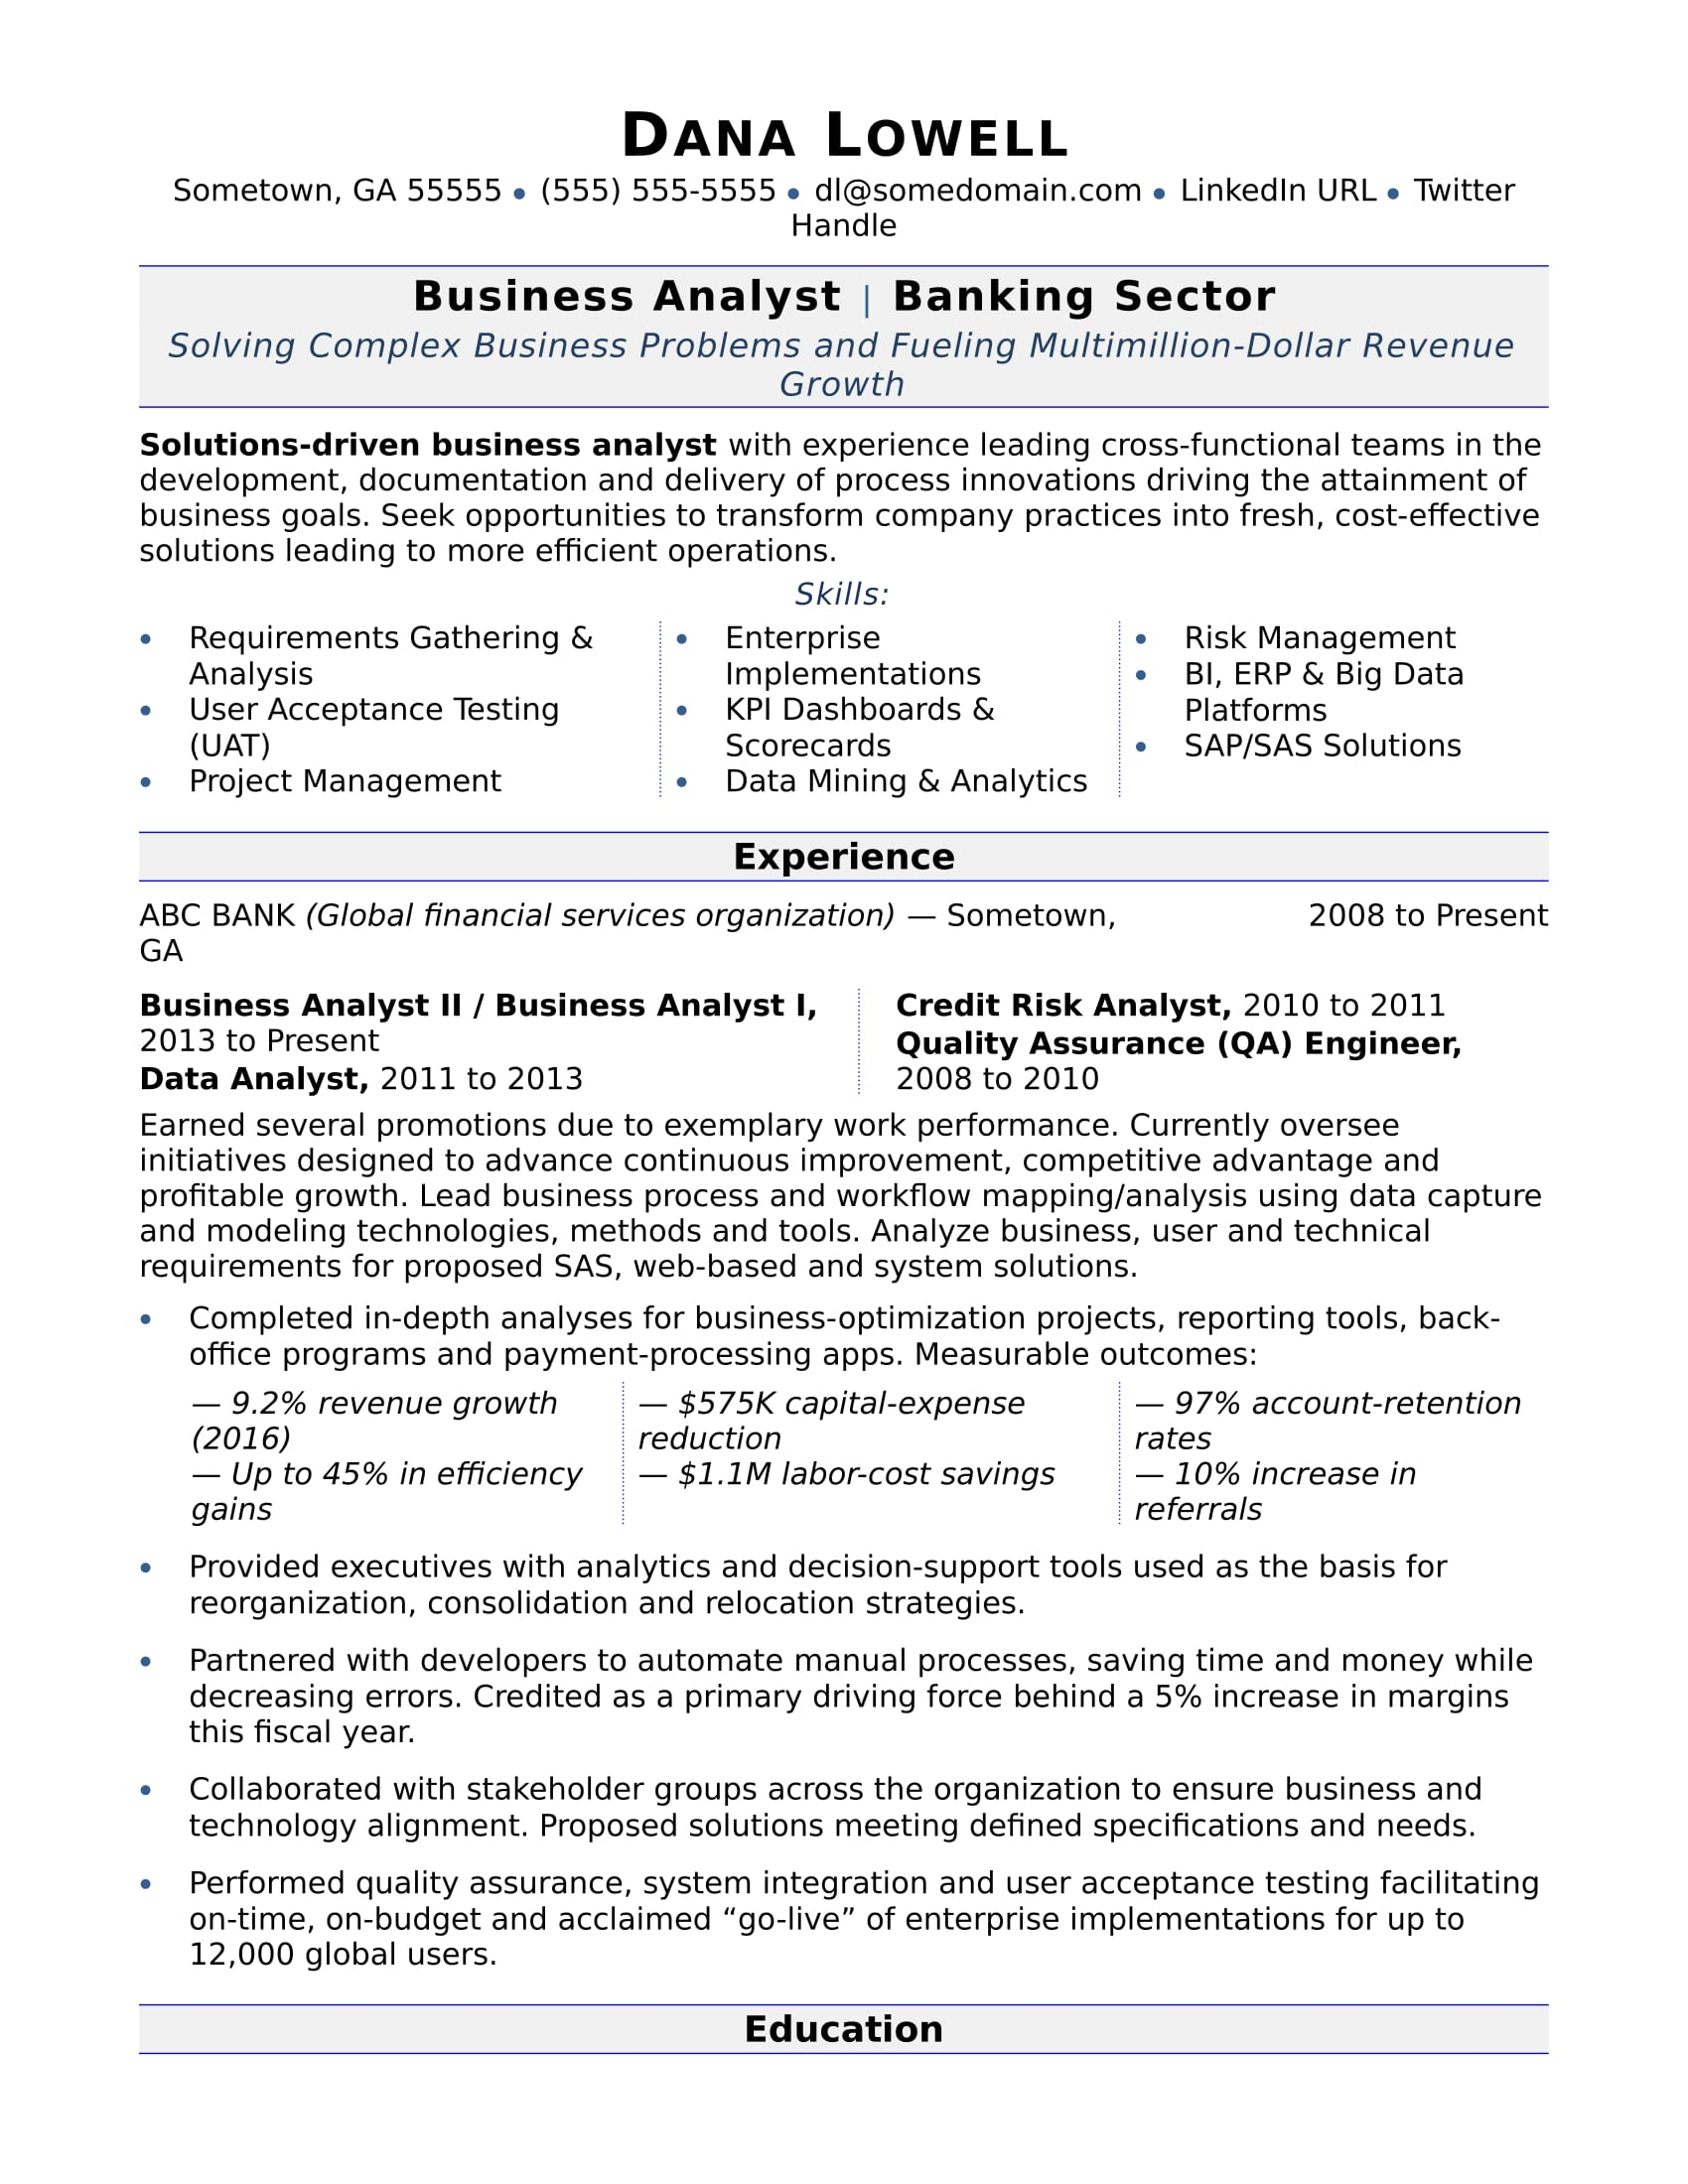 Business analyst resume sample for Resume samples for it company